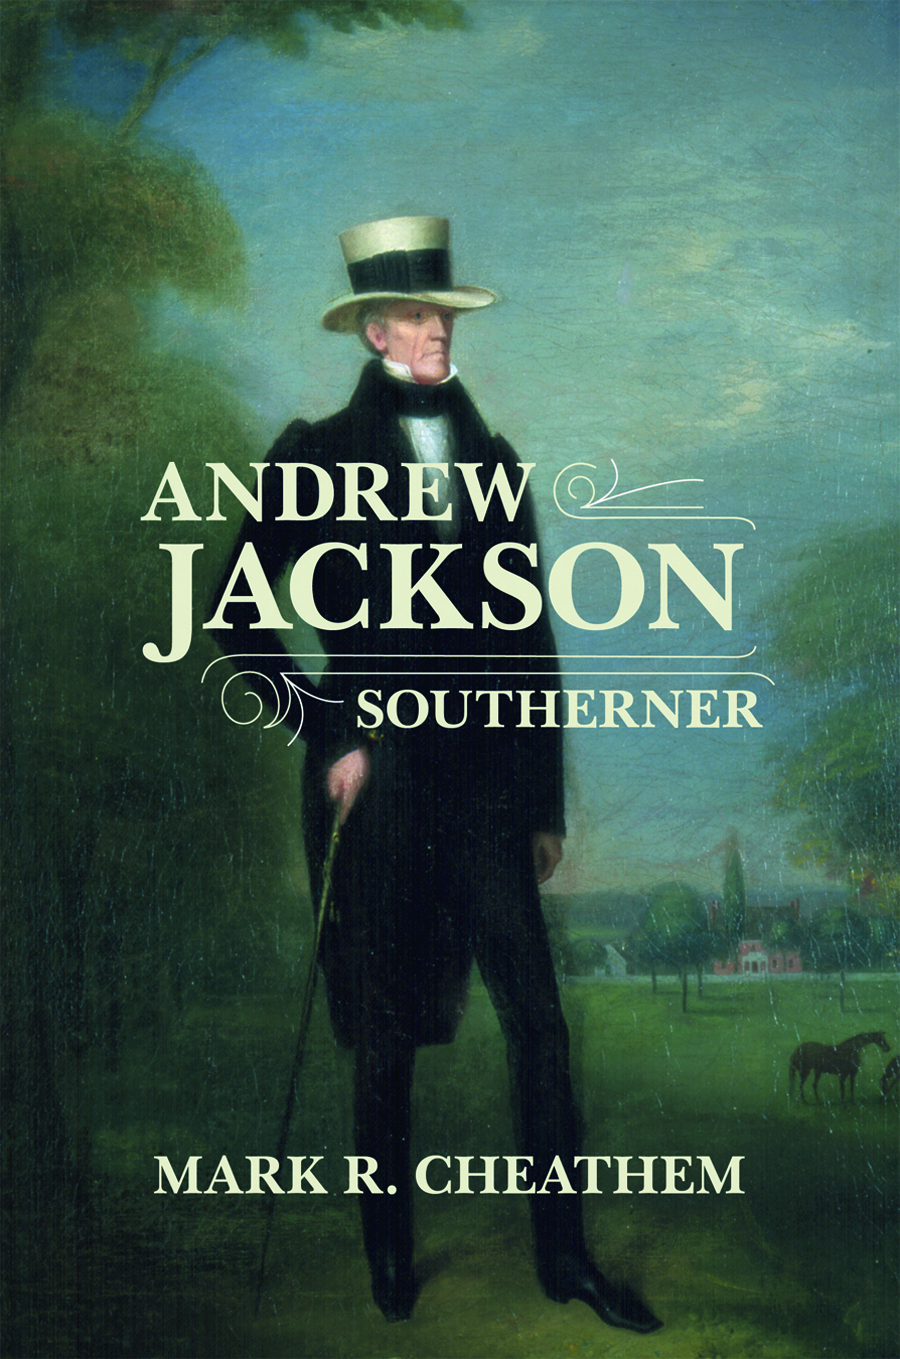 Andrew Jackson Southerner